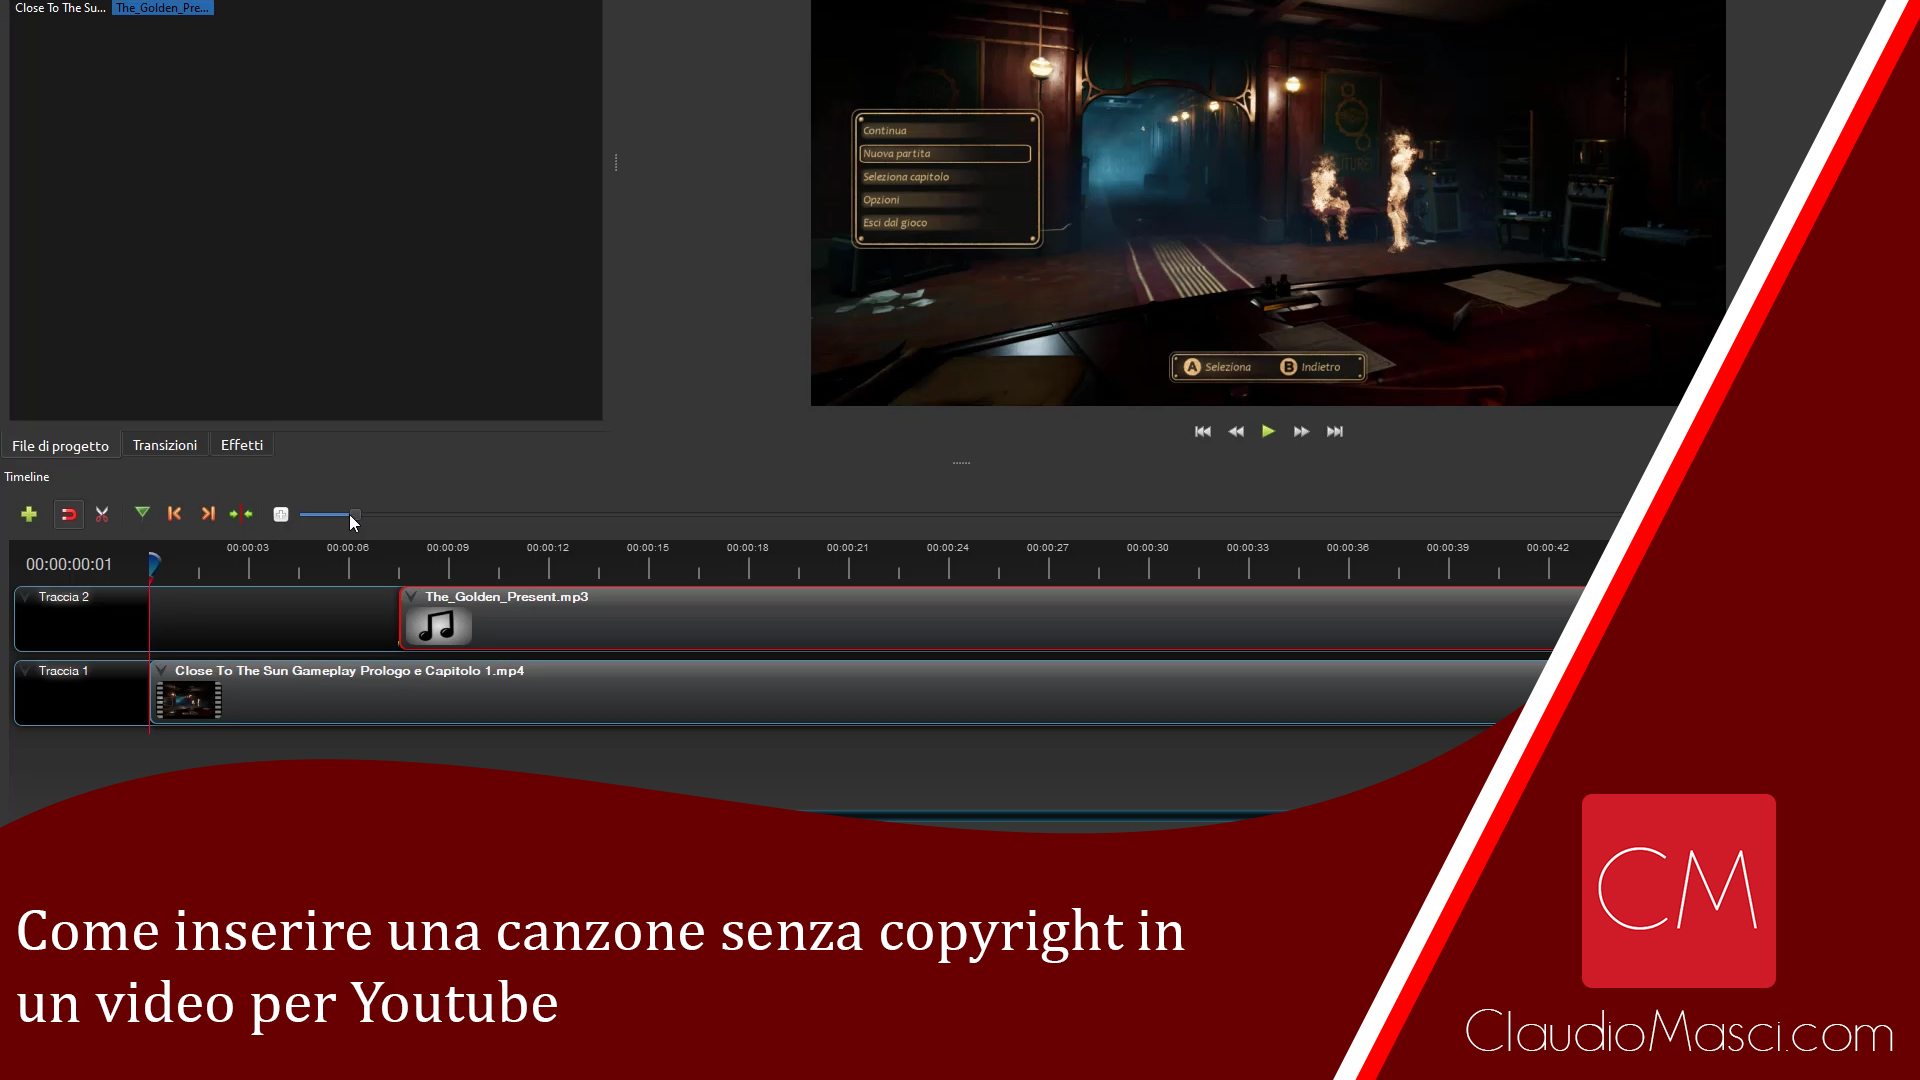 Come inserire una canzone senza copyright in un video per Youtube